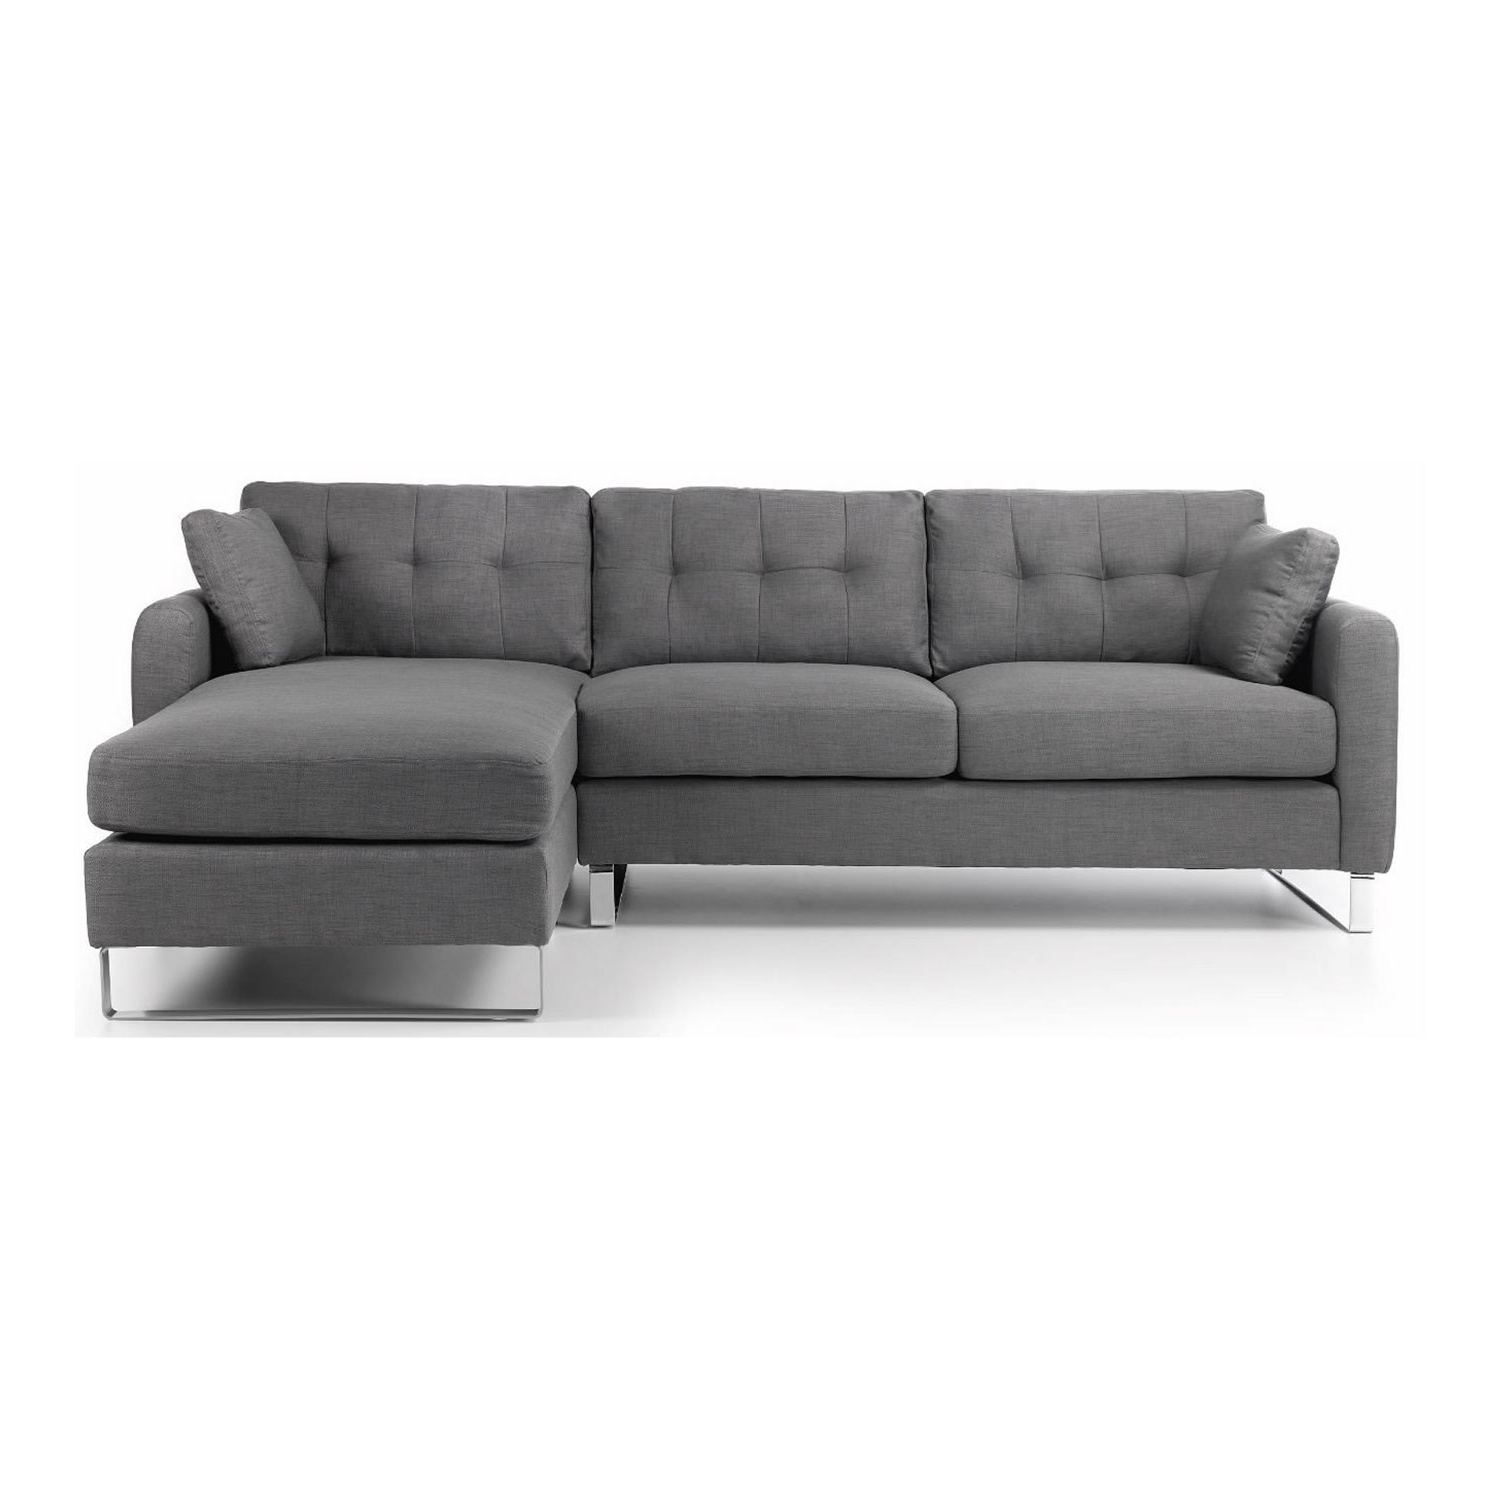 Ares Corner Chaise Sofa – Next Day Delivery Ares Corner Chaise Sofa With Recent Grey Sofa Chaises (View 3 of 15)